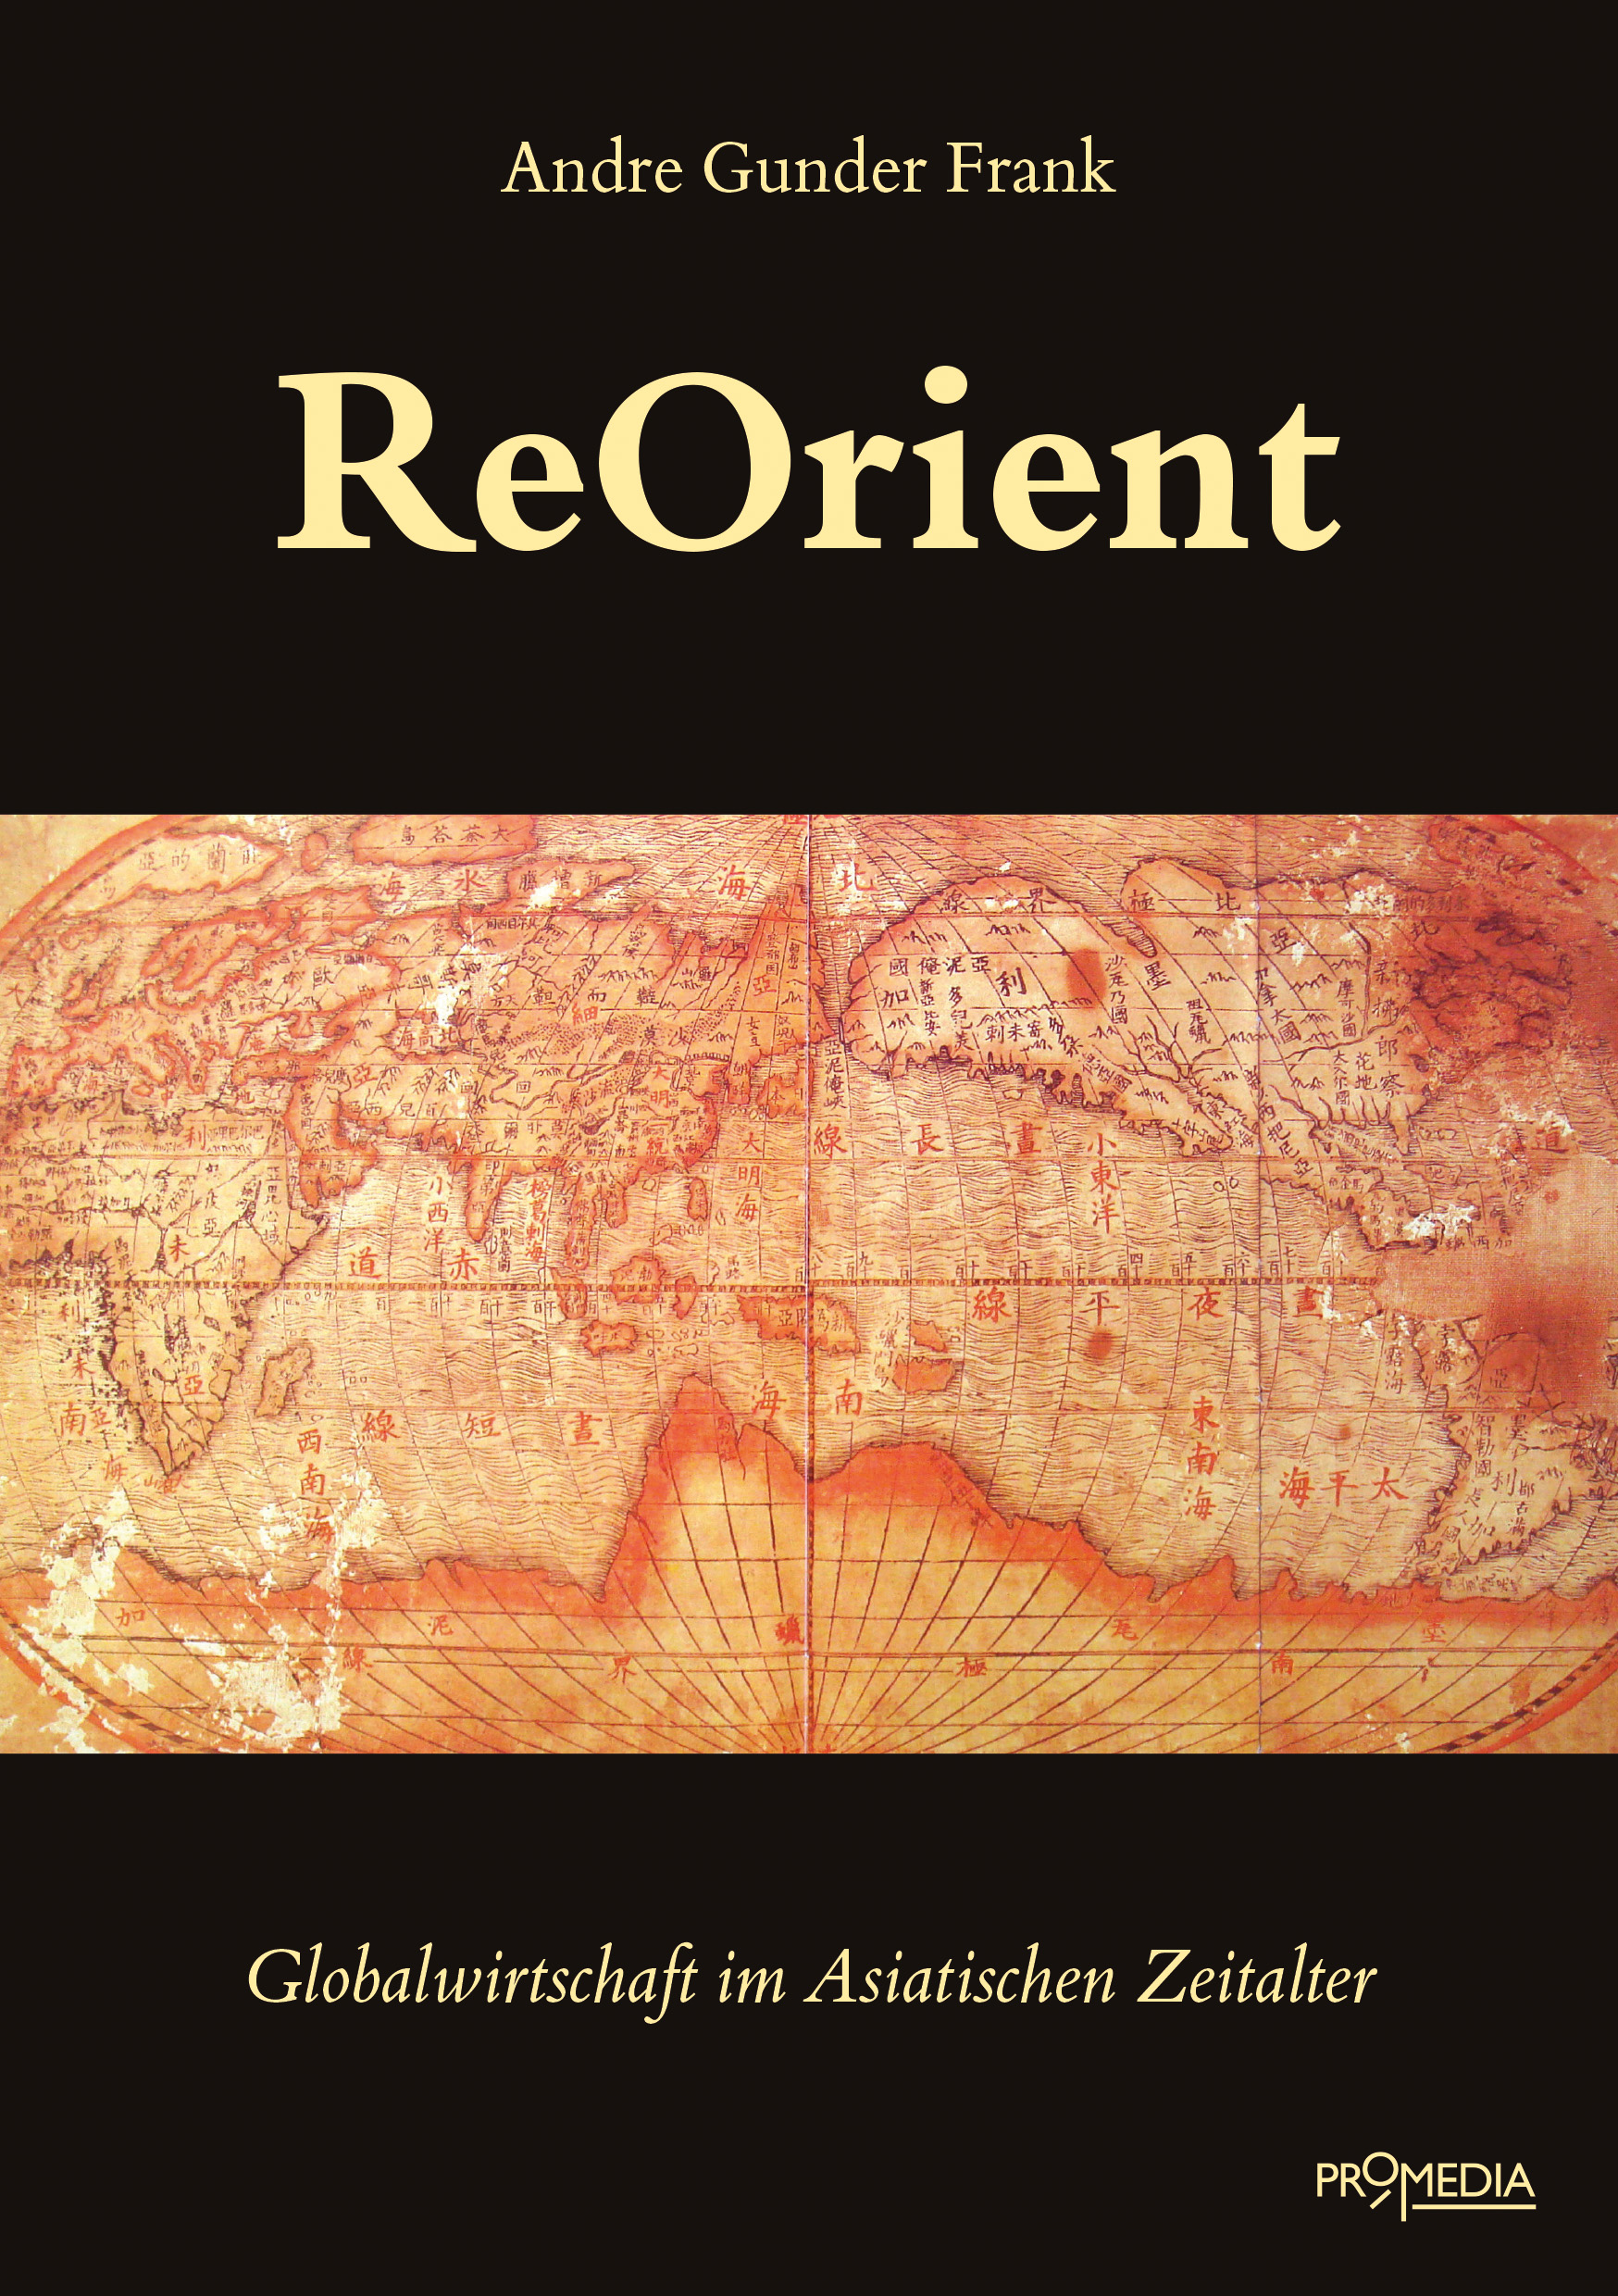 ReOrient, Andre Gunder Frank